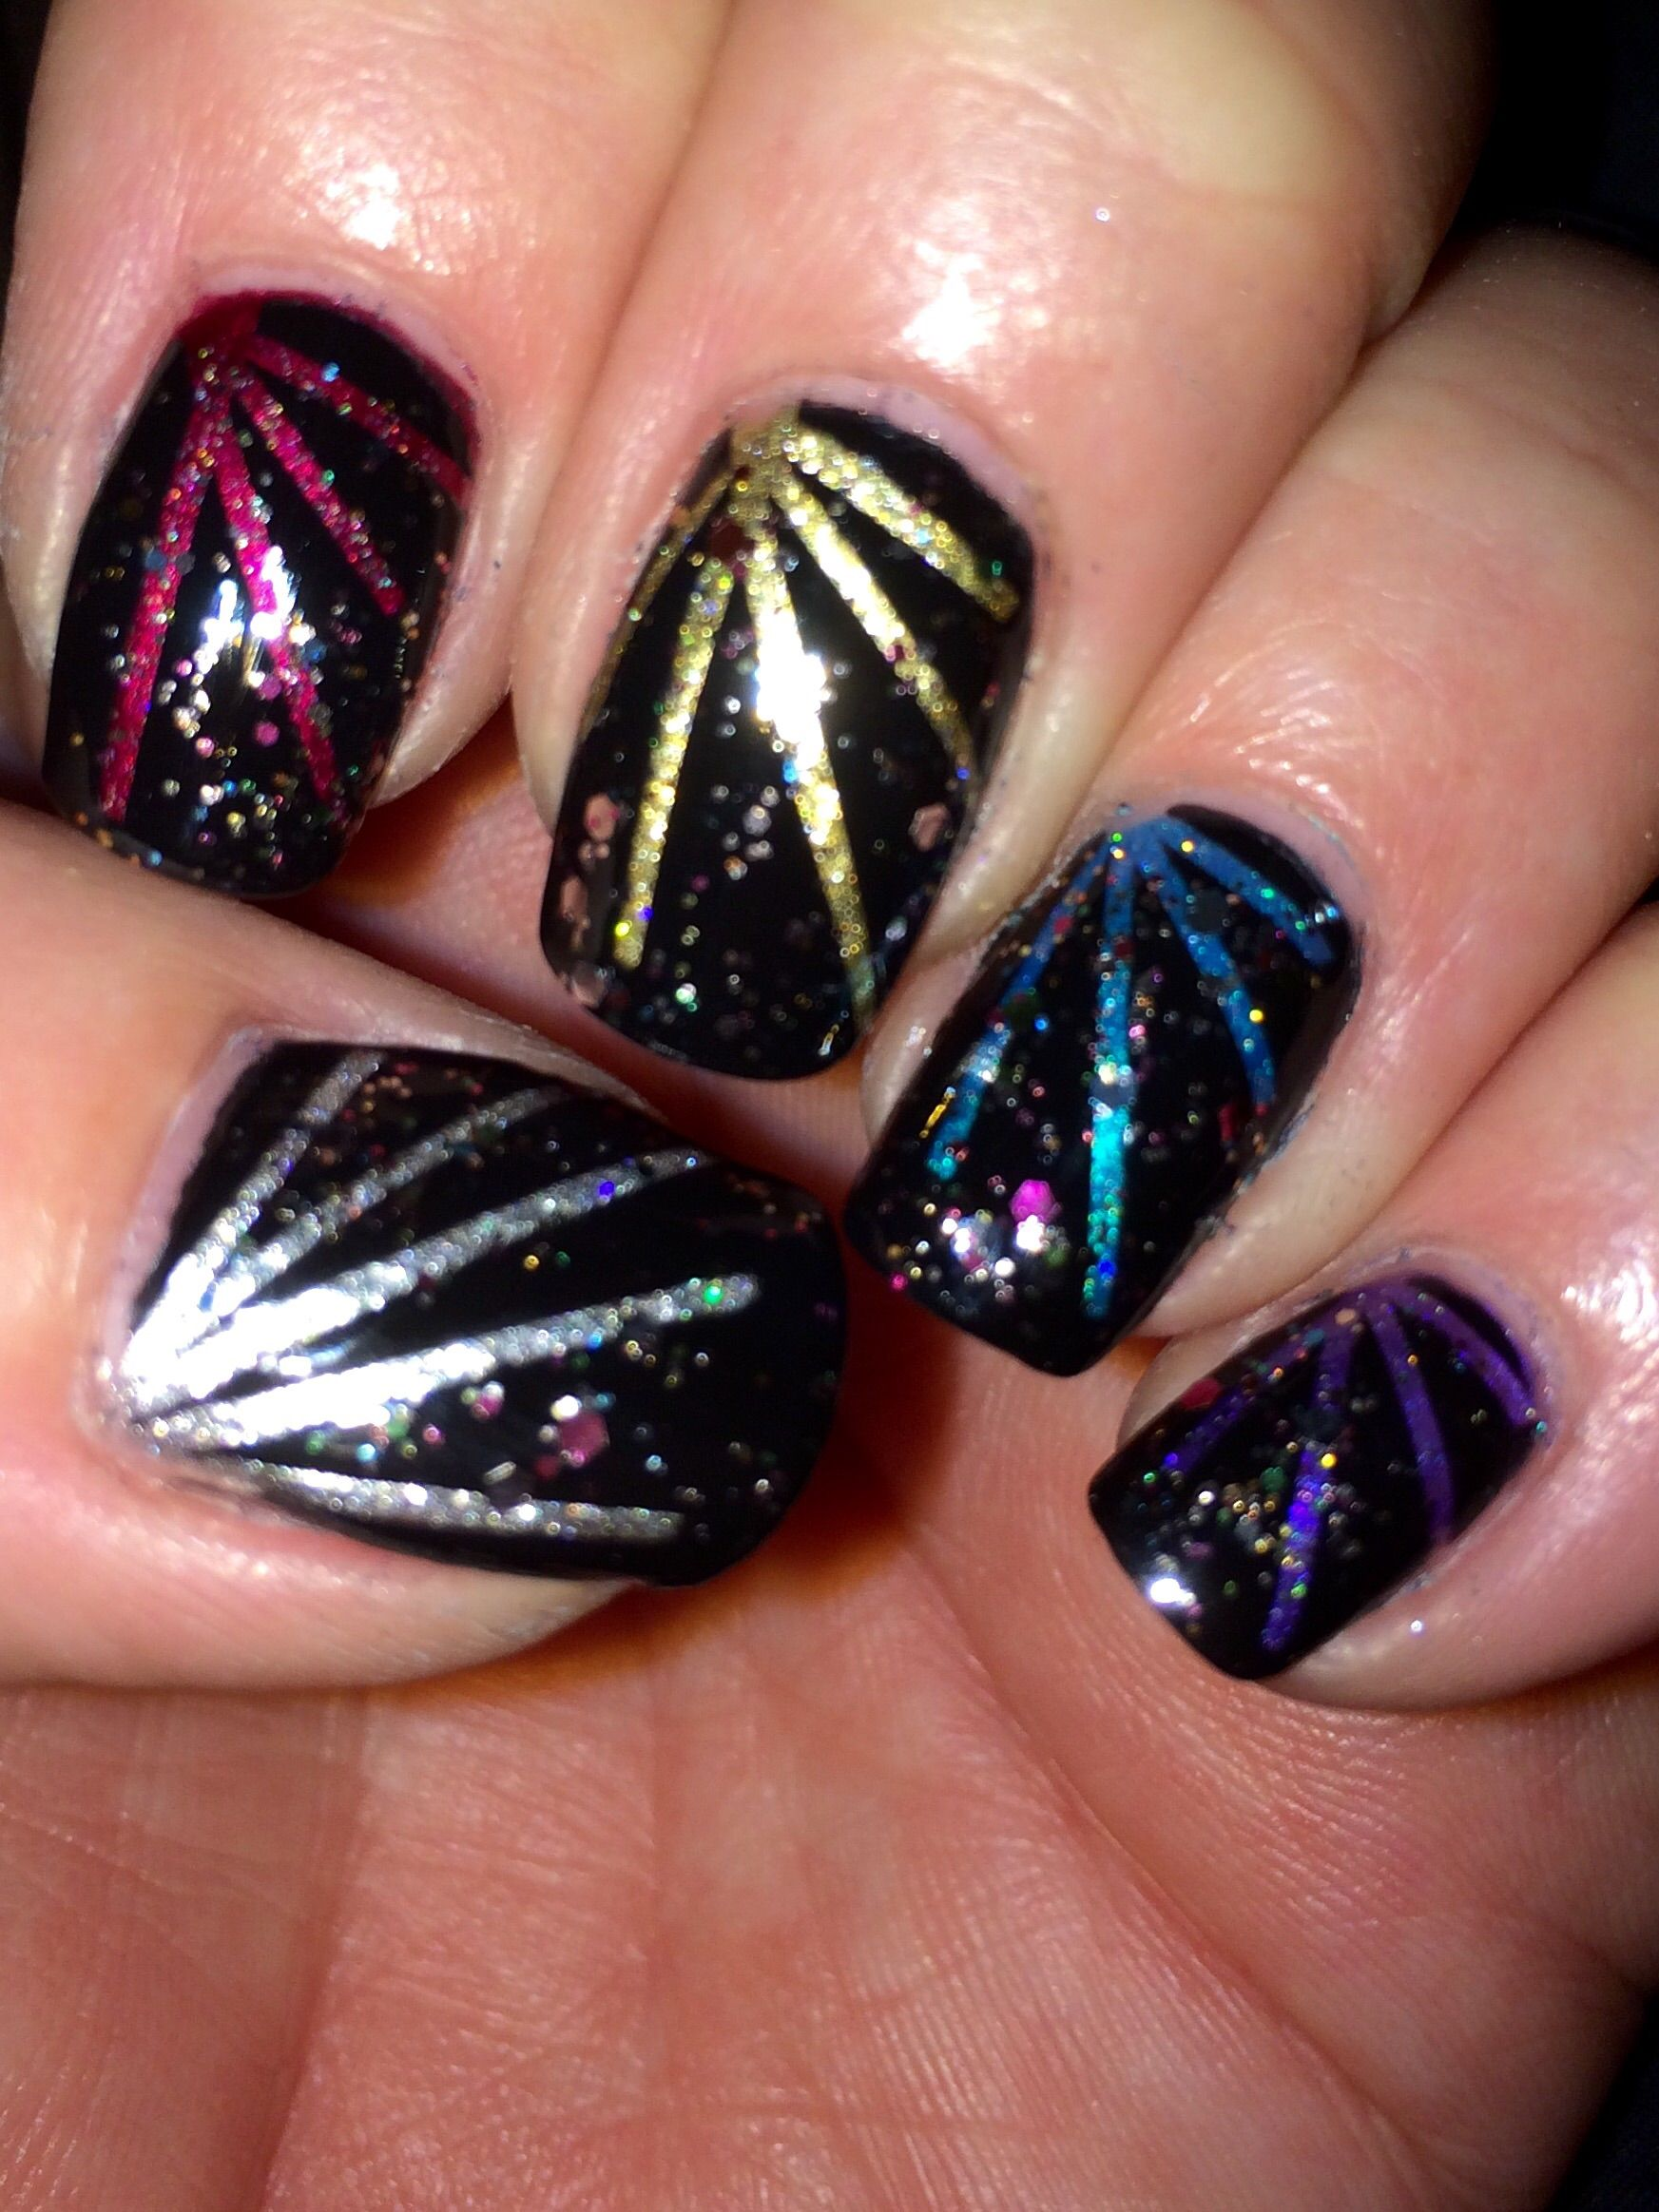 Fireworks for New Years #fireworks #newyears #nails #nailart | Nails ...